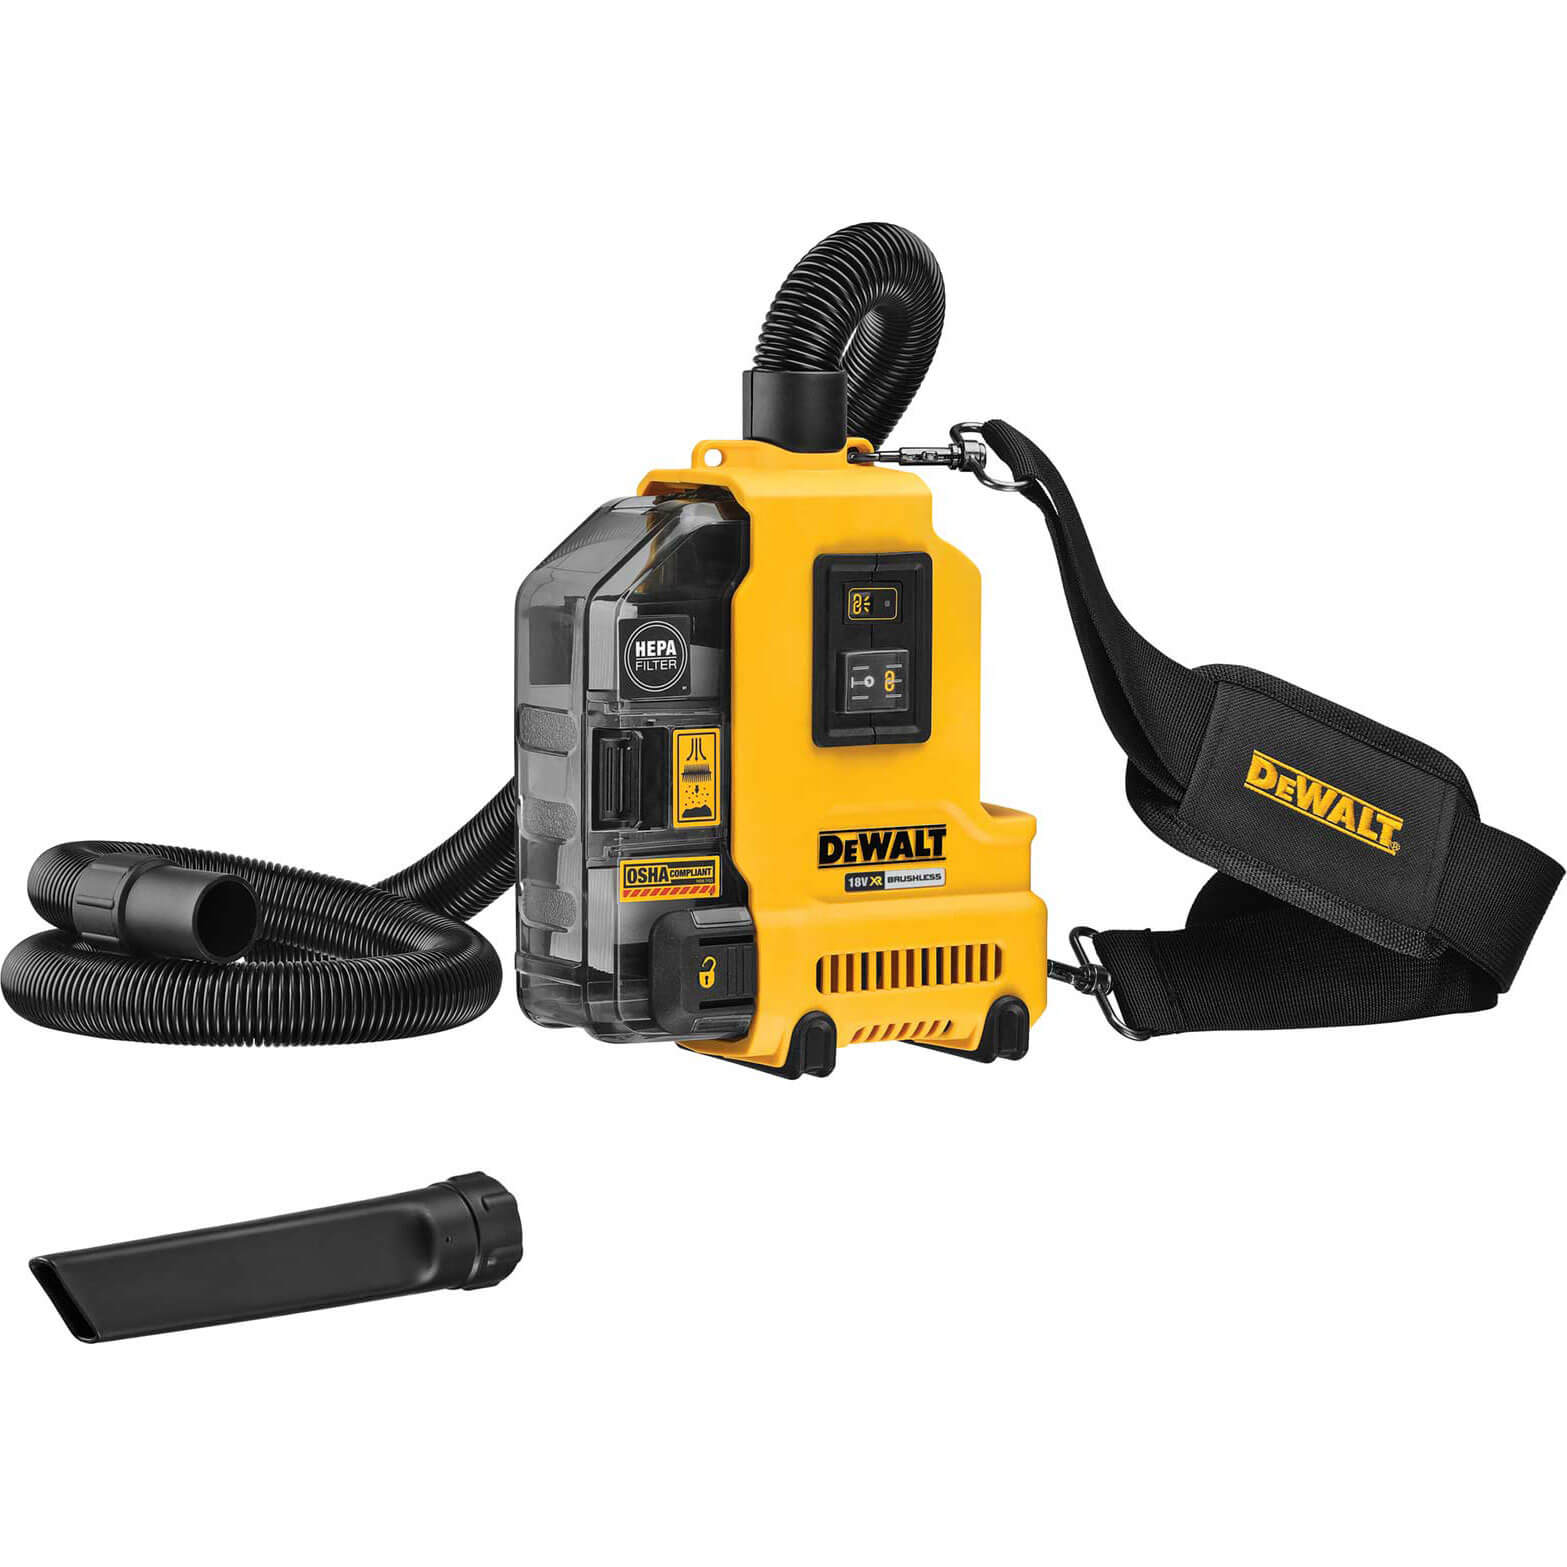 DeWalt DWH161N 18v XR Universal Cordless Dust Extractor No Batteries No Charger No Case